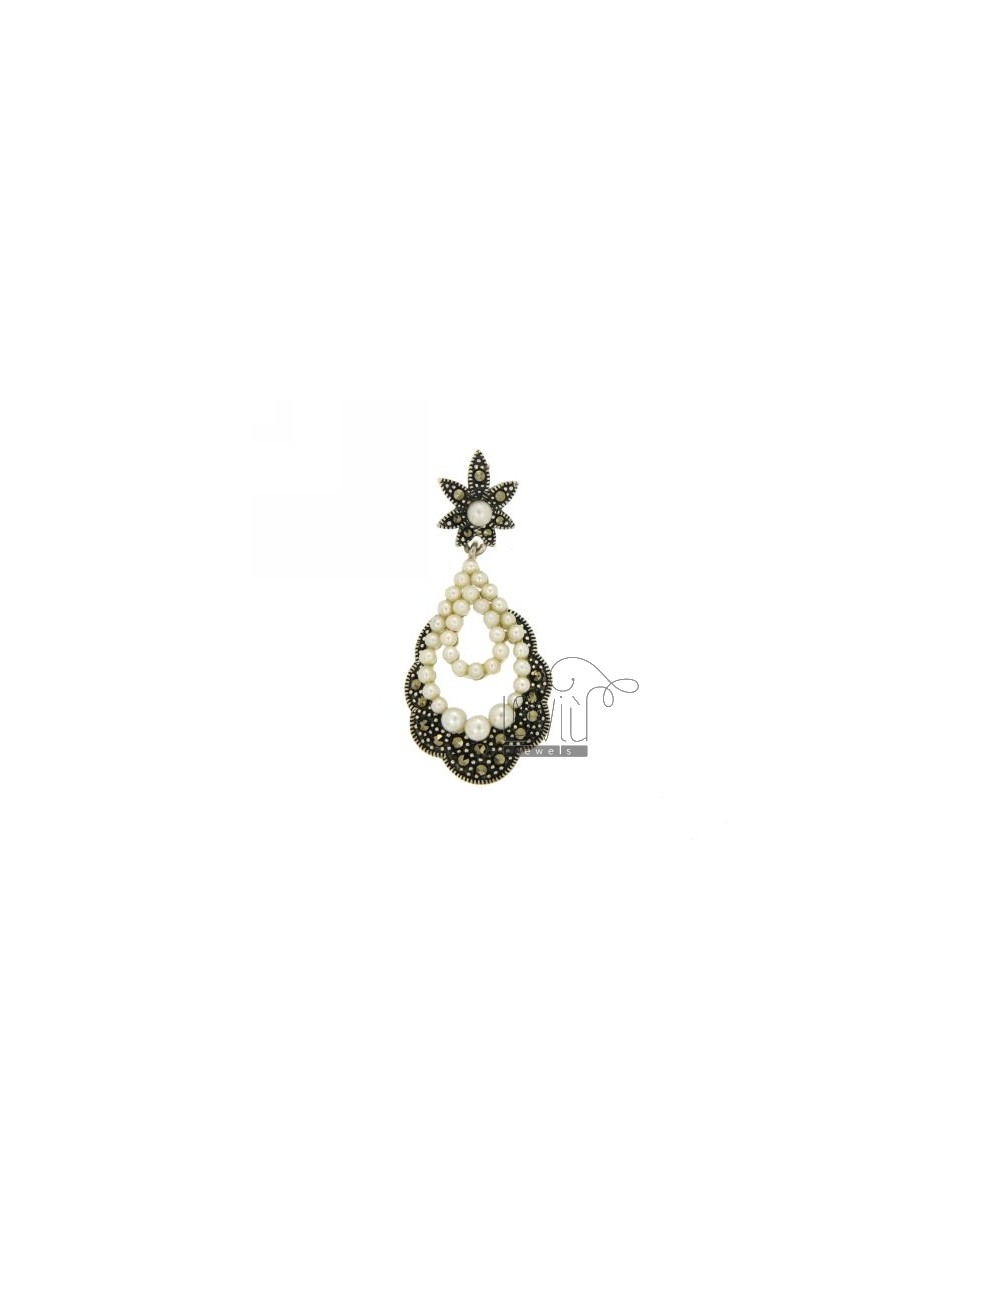 MARCASITE CHARM IN AG TIT 925 AND BEADS